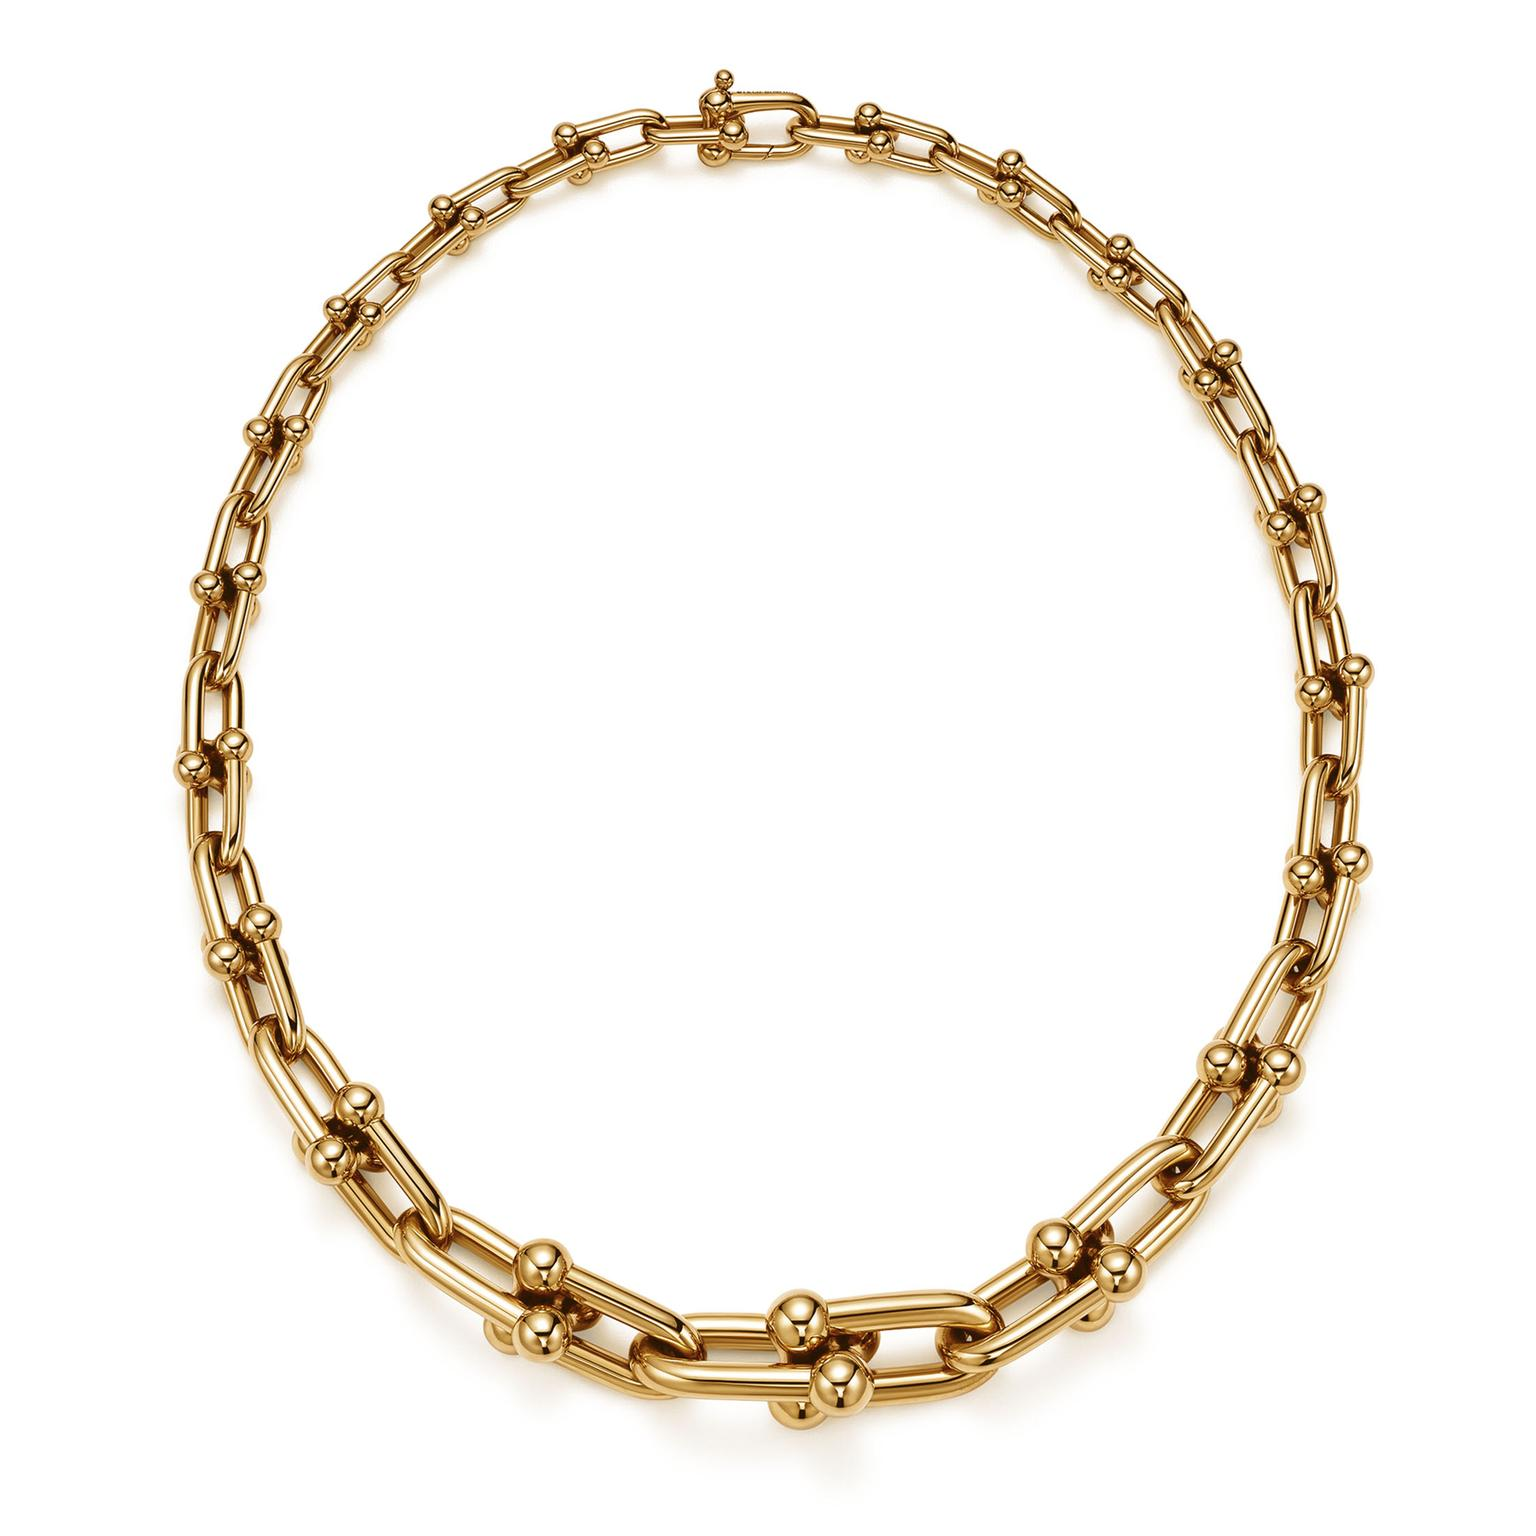 Tiffany City Hardwear gold necklace